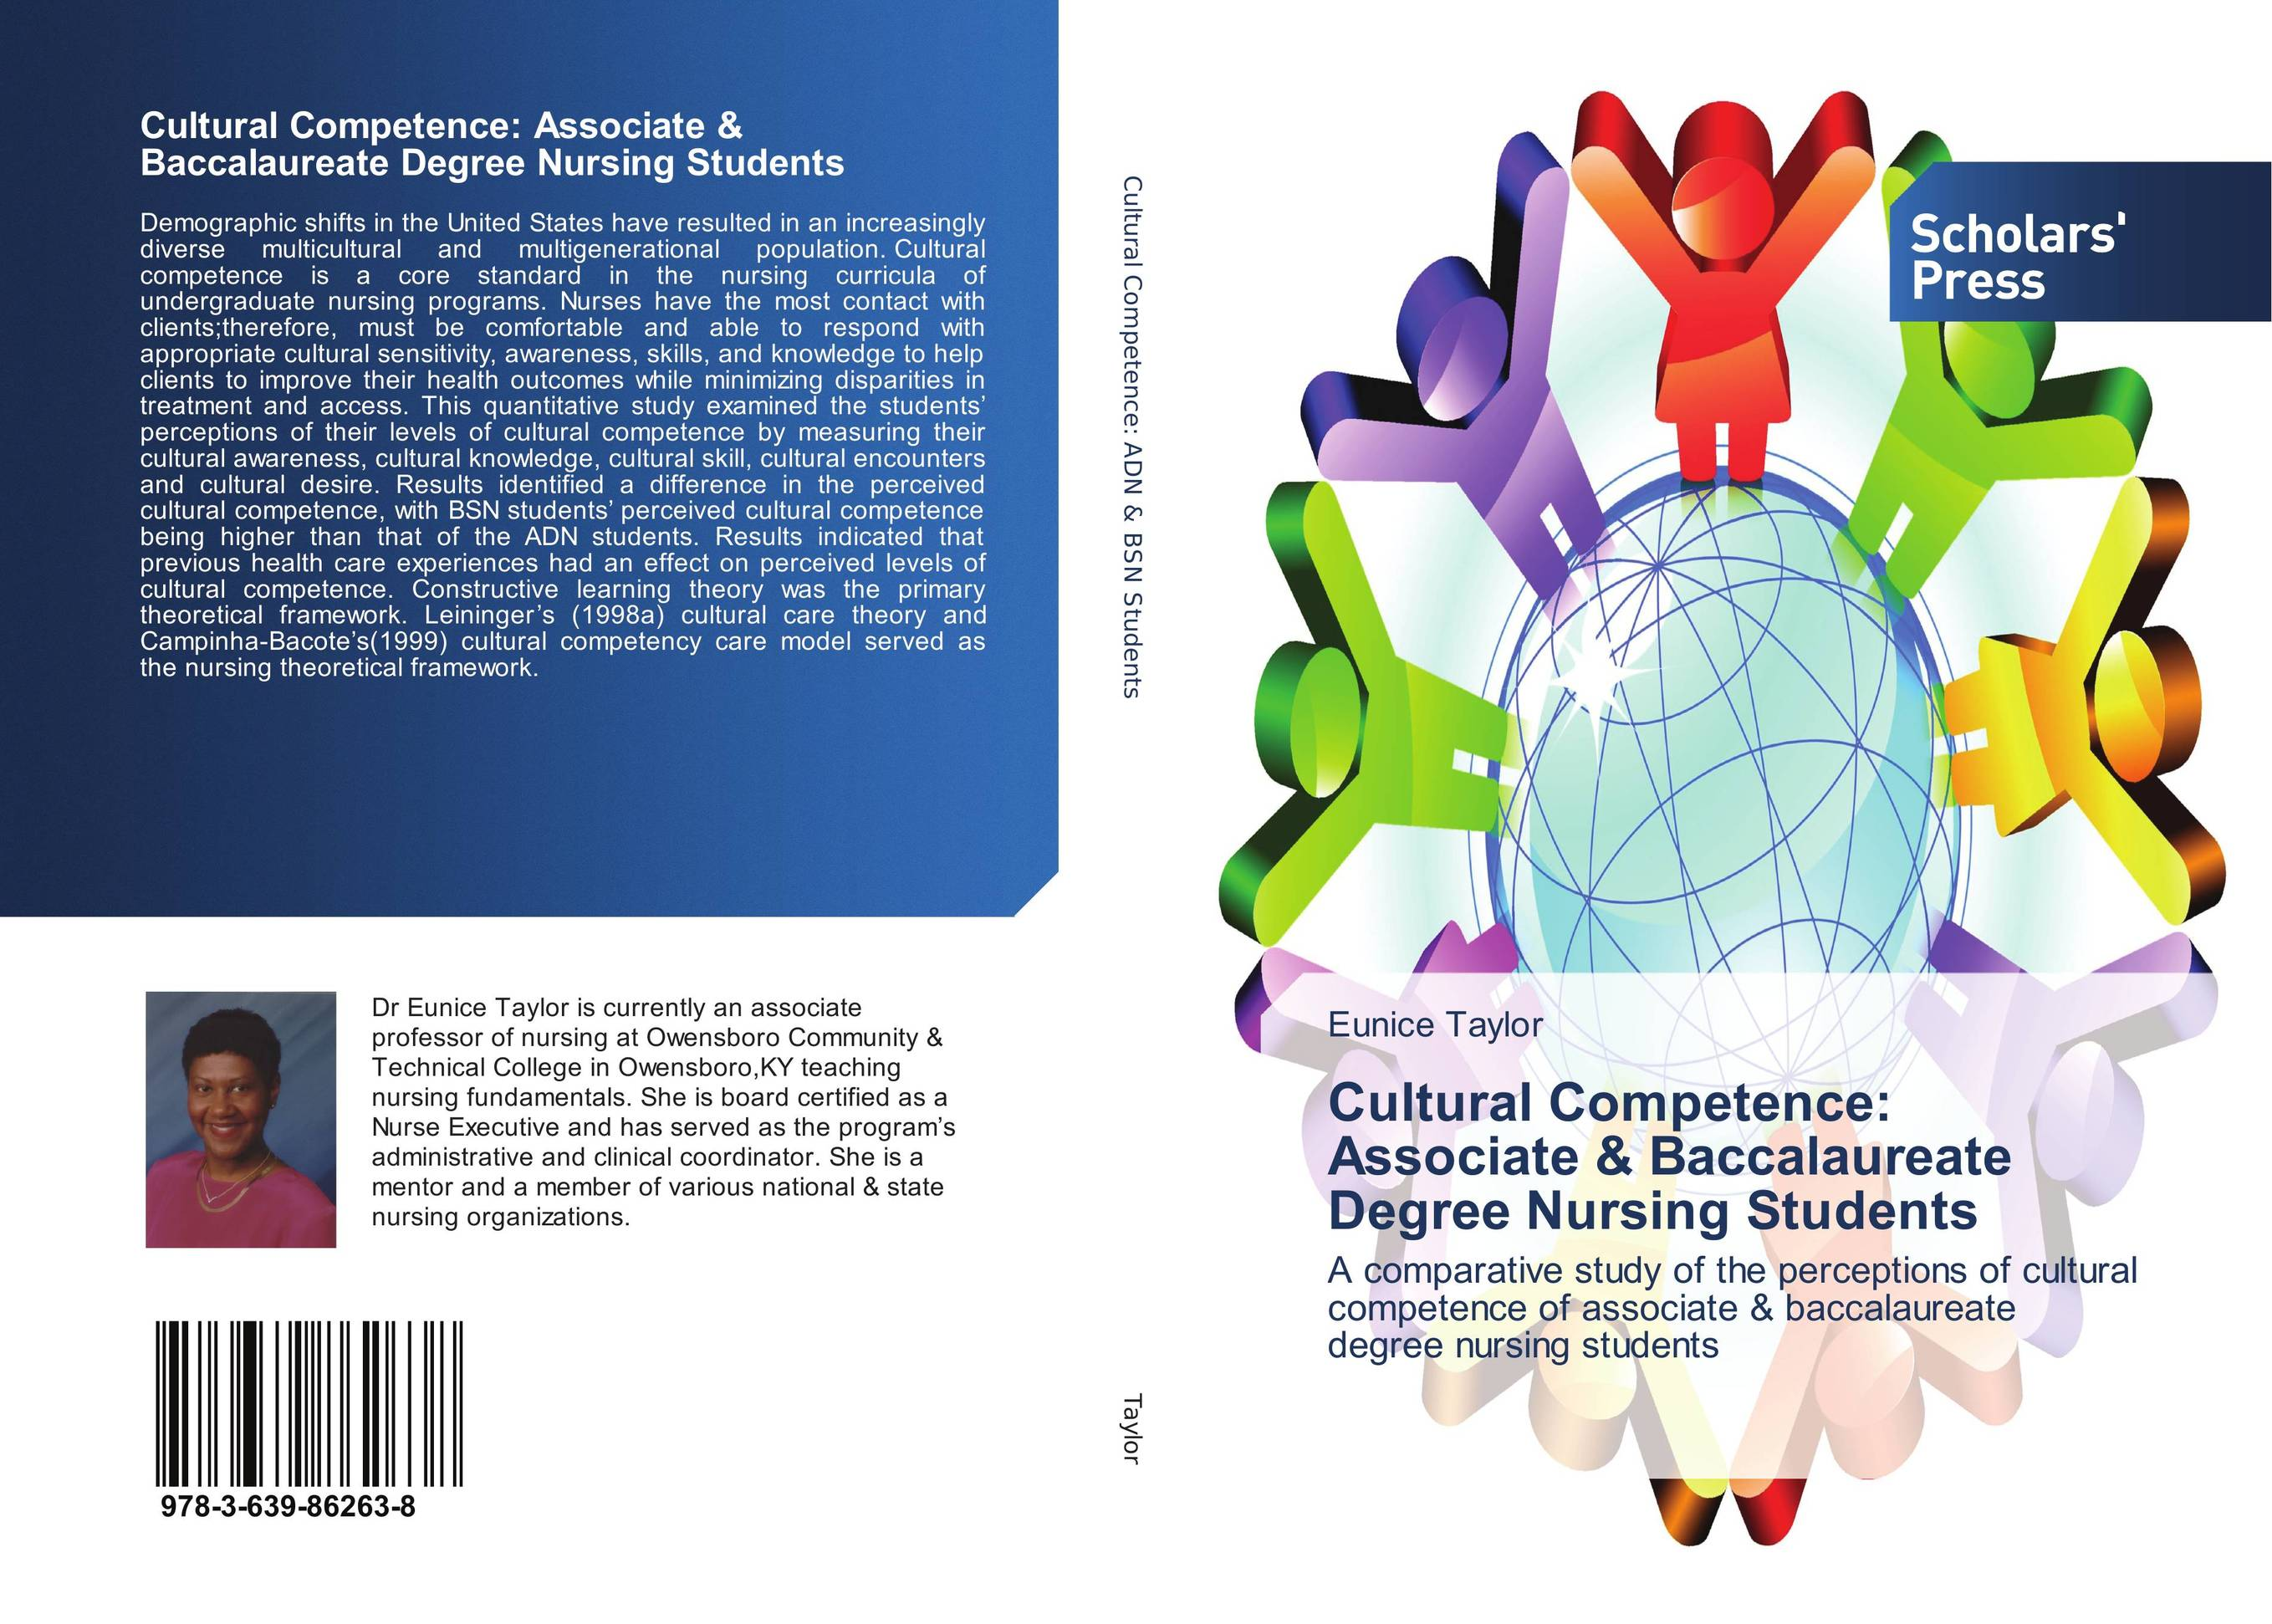 nurse cultural competence critical reflection Method data were collected using almutairi's critical cultural competence scale (ccc scale) with a random sample of 170 registered nurses this scale measures four essential multidimensional components of the ccc model: critical awareness, critical knowledge, critical skills, and critical empowerment.